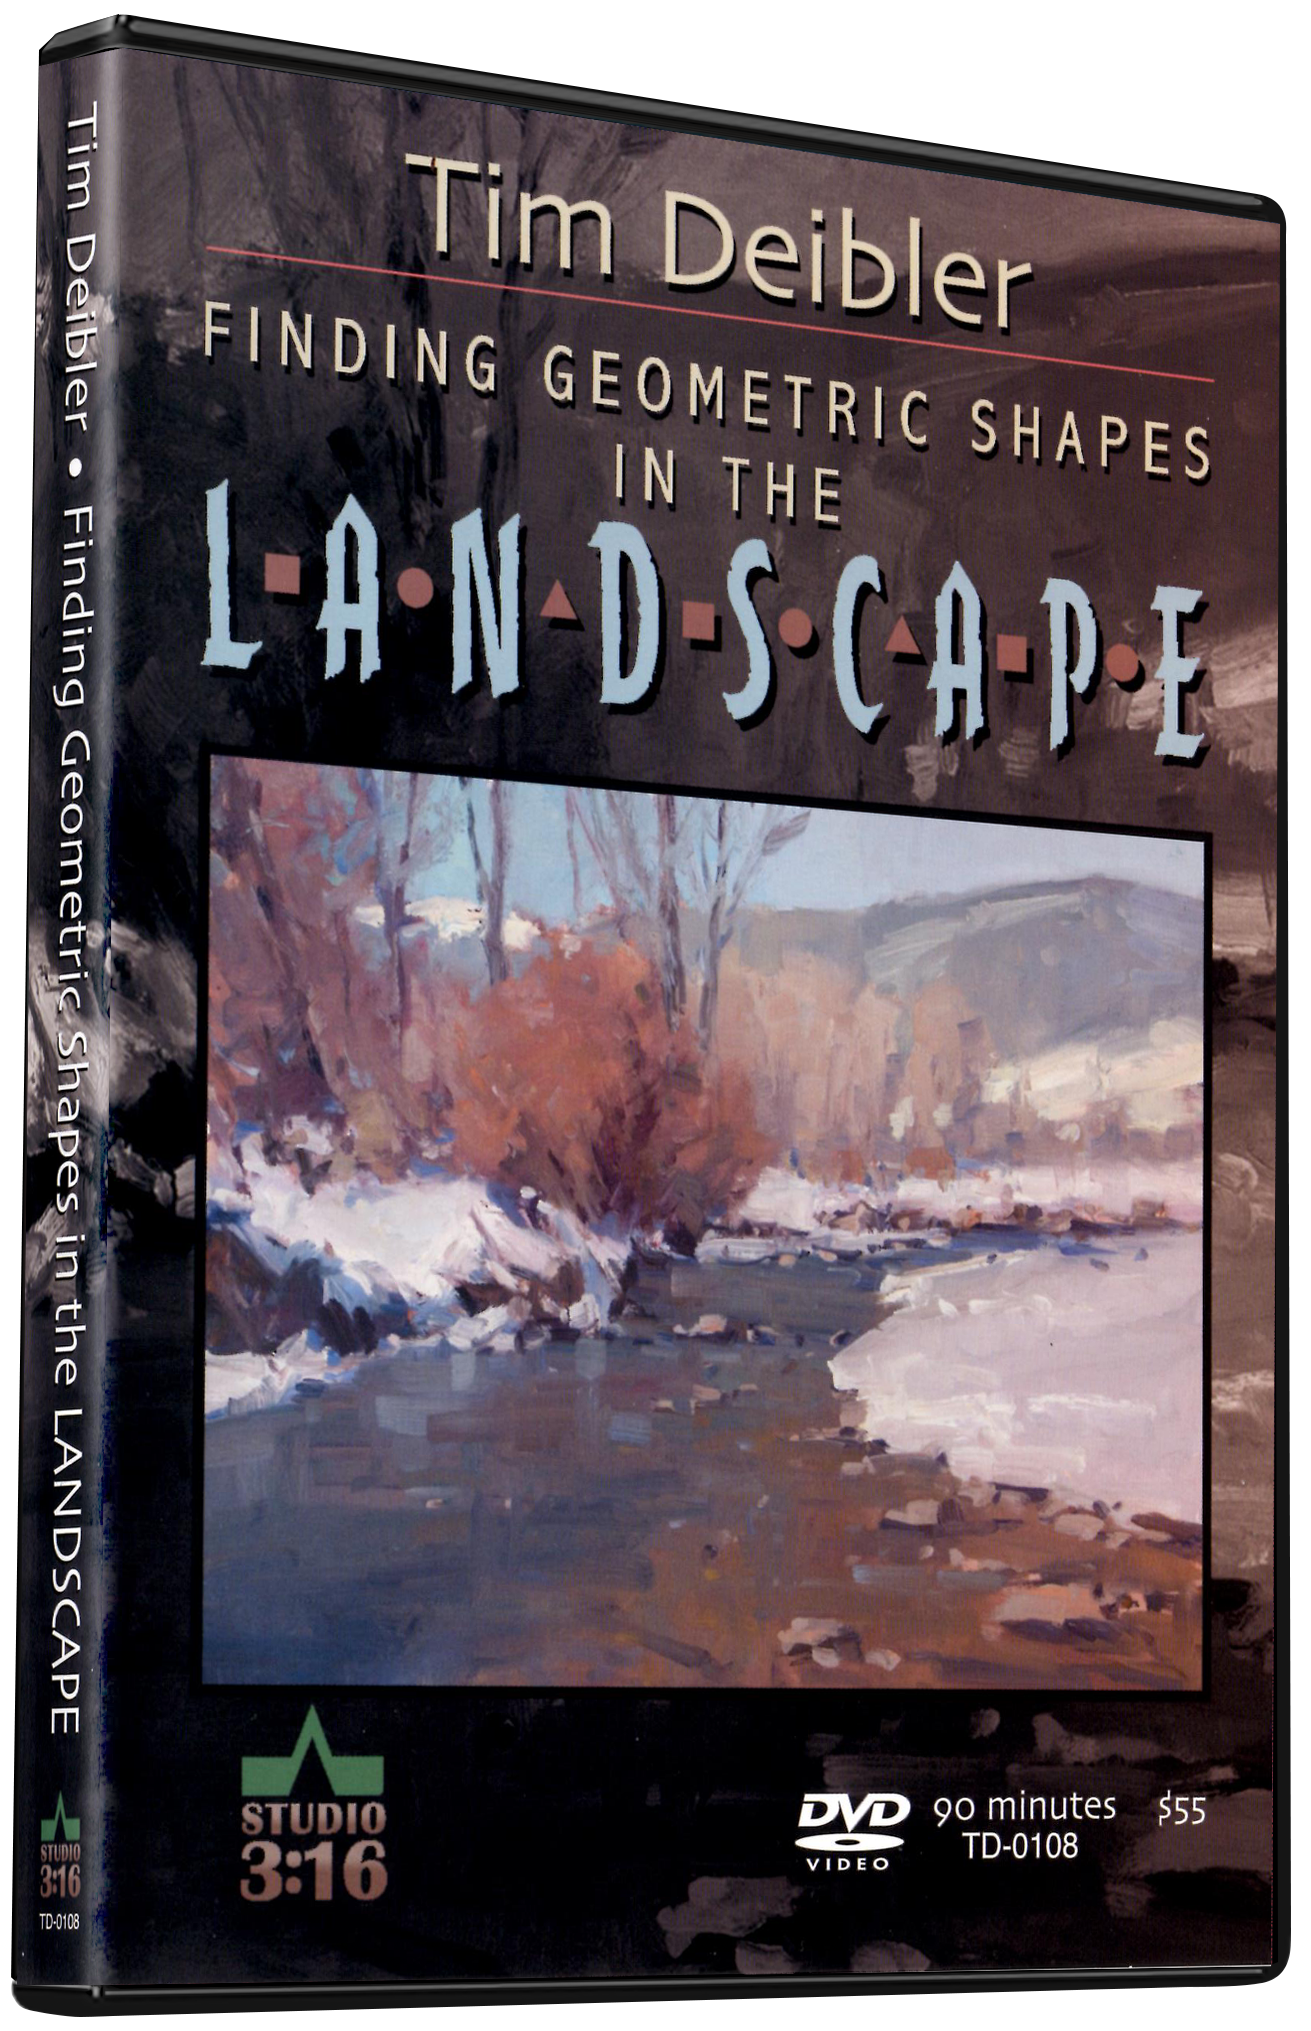 Tim Deibler: Finding Geometric Shapes in Landscape